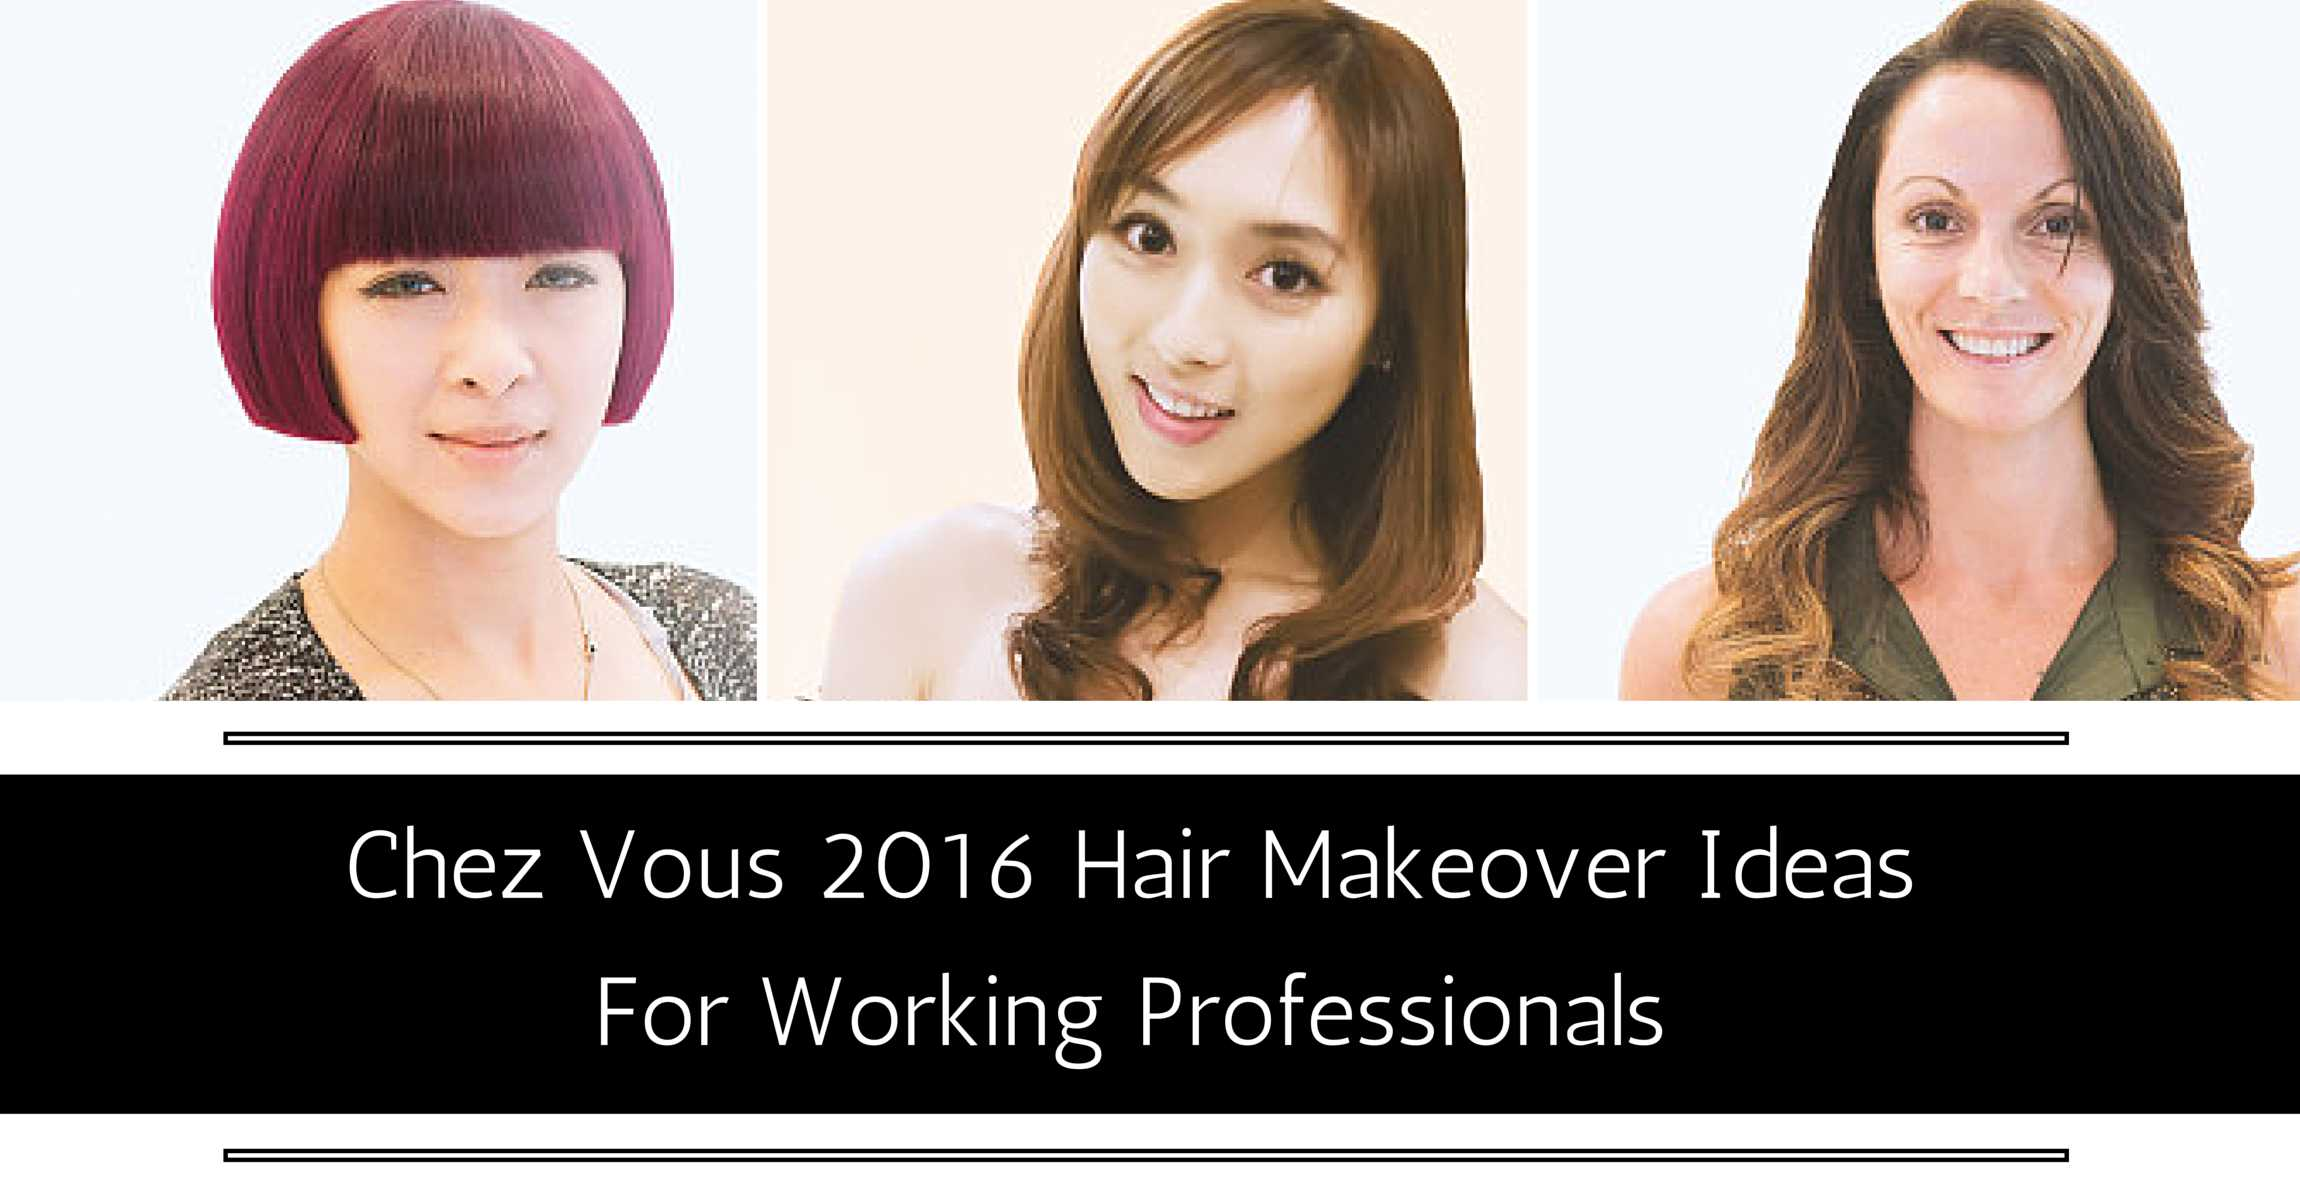 Chez Vous 2016 Hair Makeover Ideas for Working Professionals